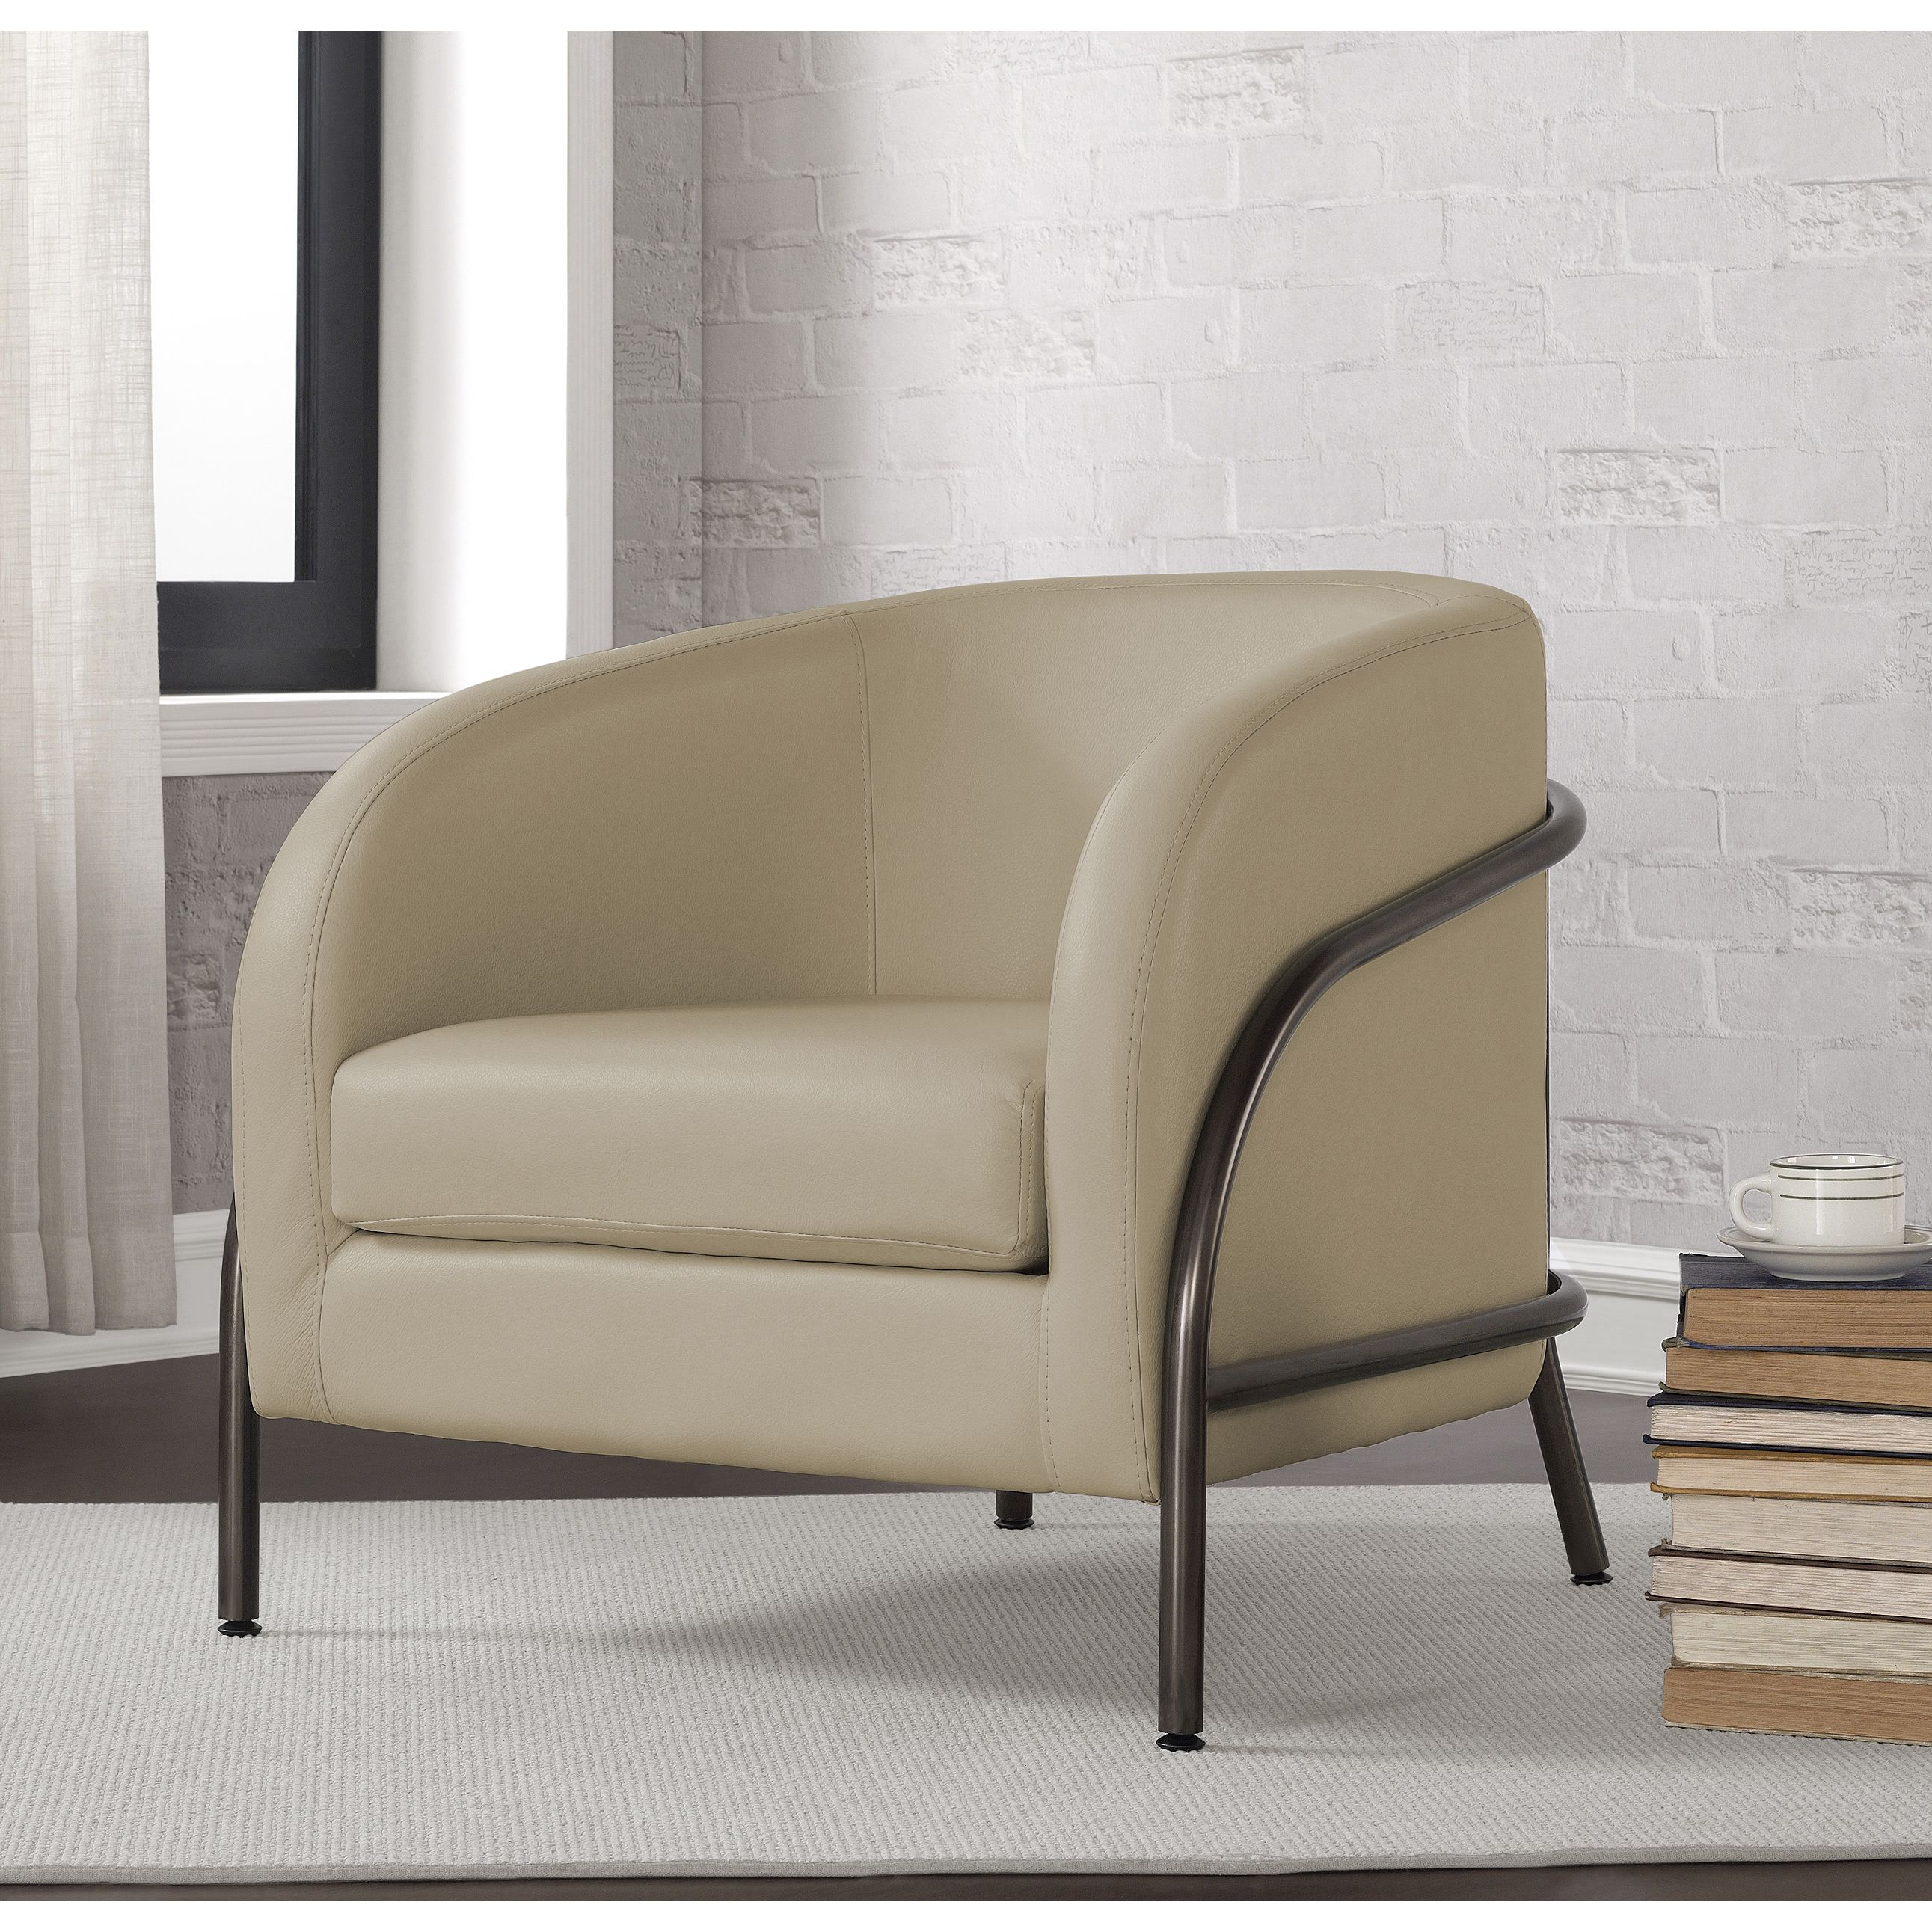 Finished in a lovely creme color, this bonded leather chair is perfect for any corner of your home. Made to last, it has a sturdy outer metal frame with a vintage finish and adjustable foot glides.